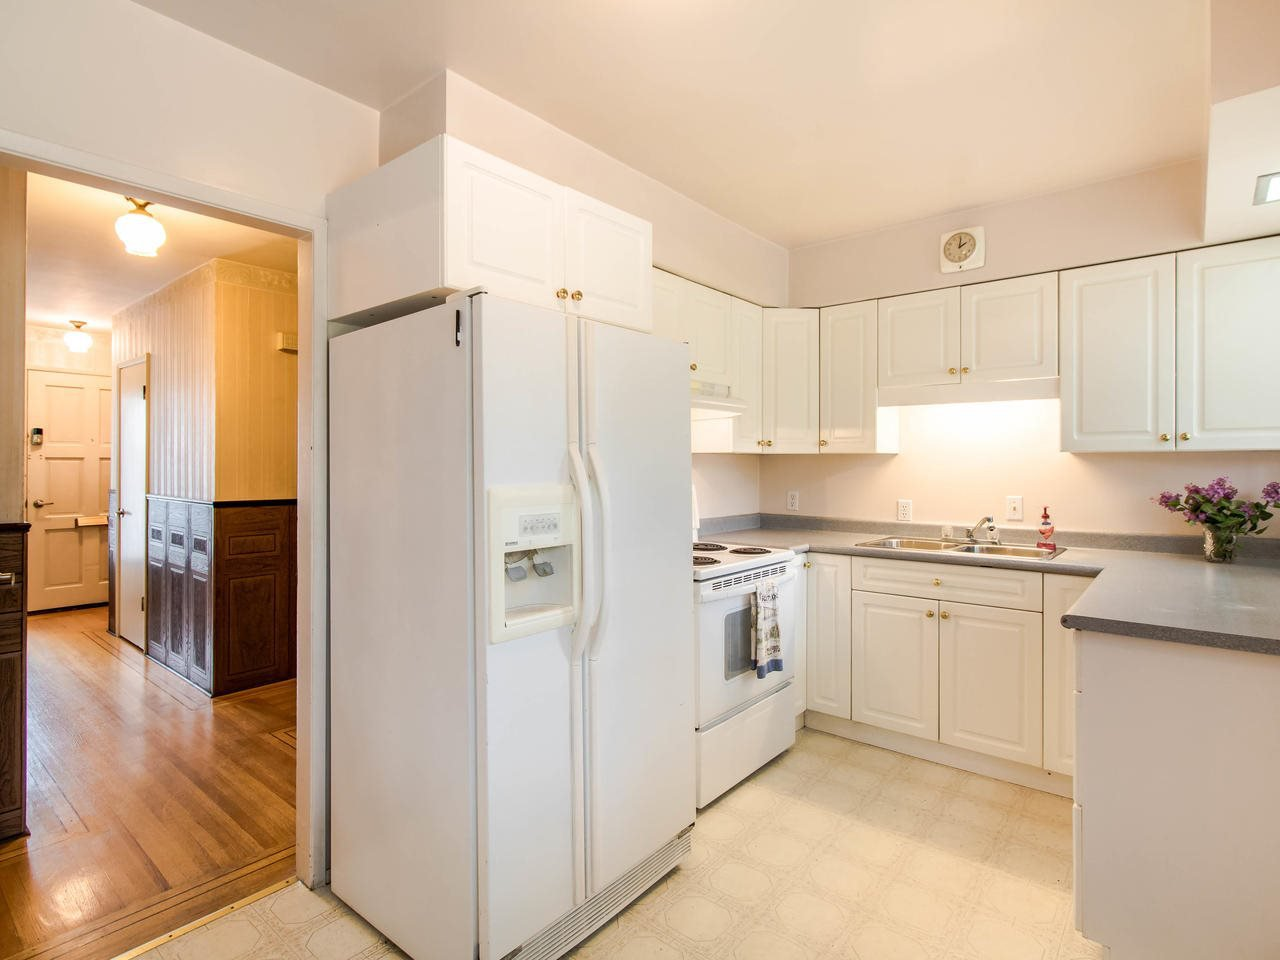 Photo 9: Photos: 545 GARFIELD Street in New Westminster: The Heights NW House for sale : MLS®# R2453912